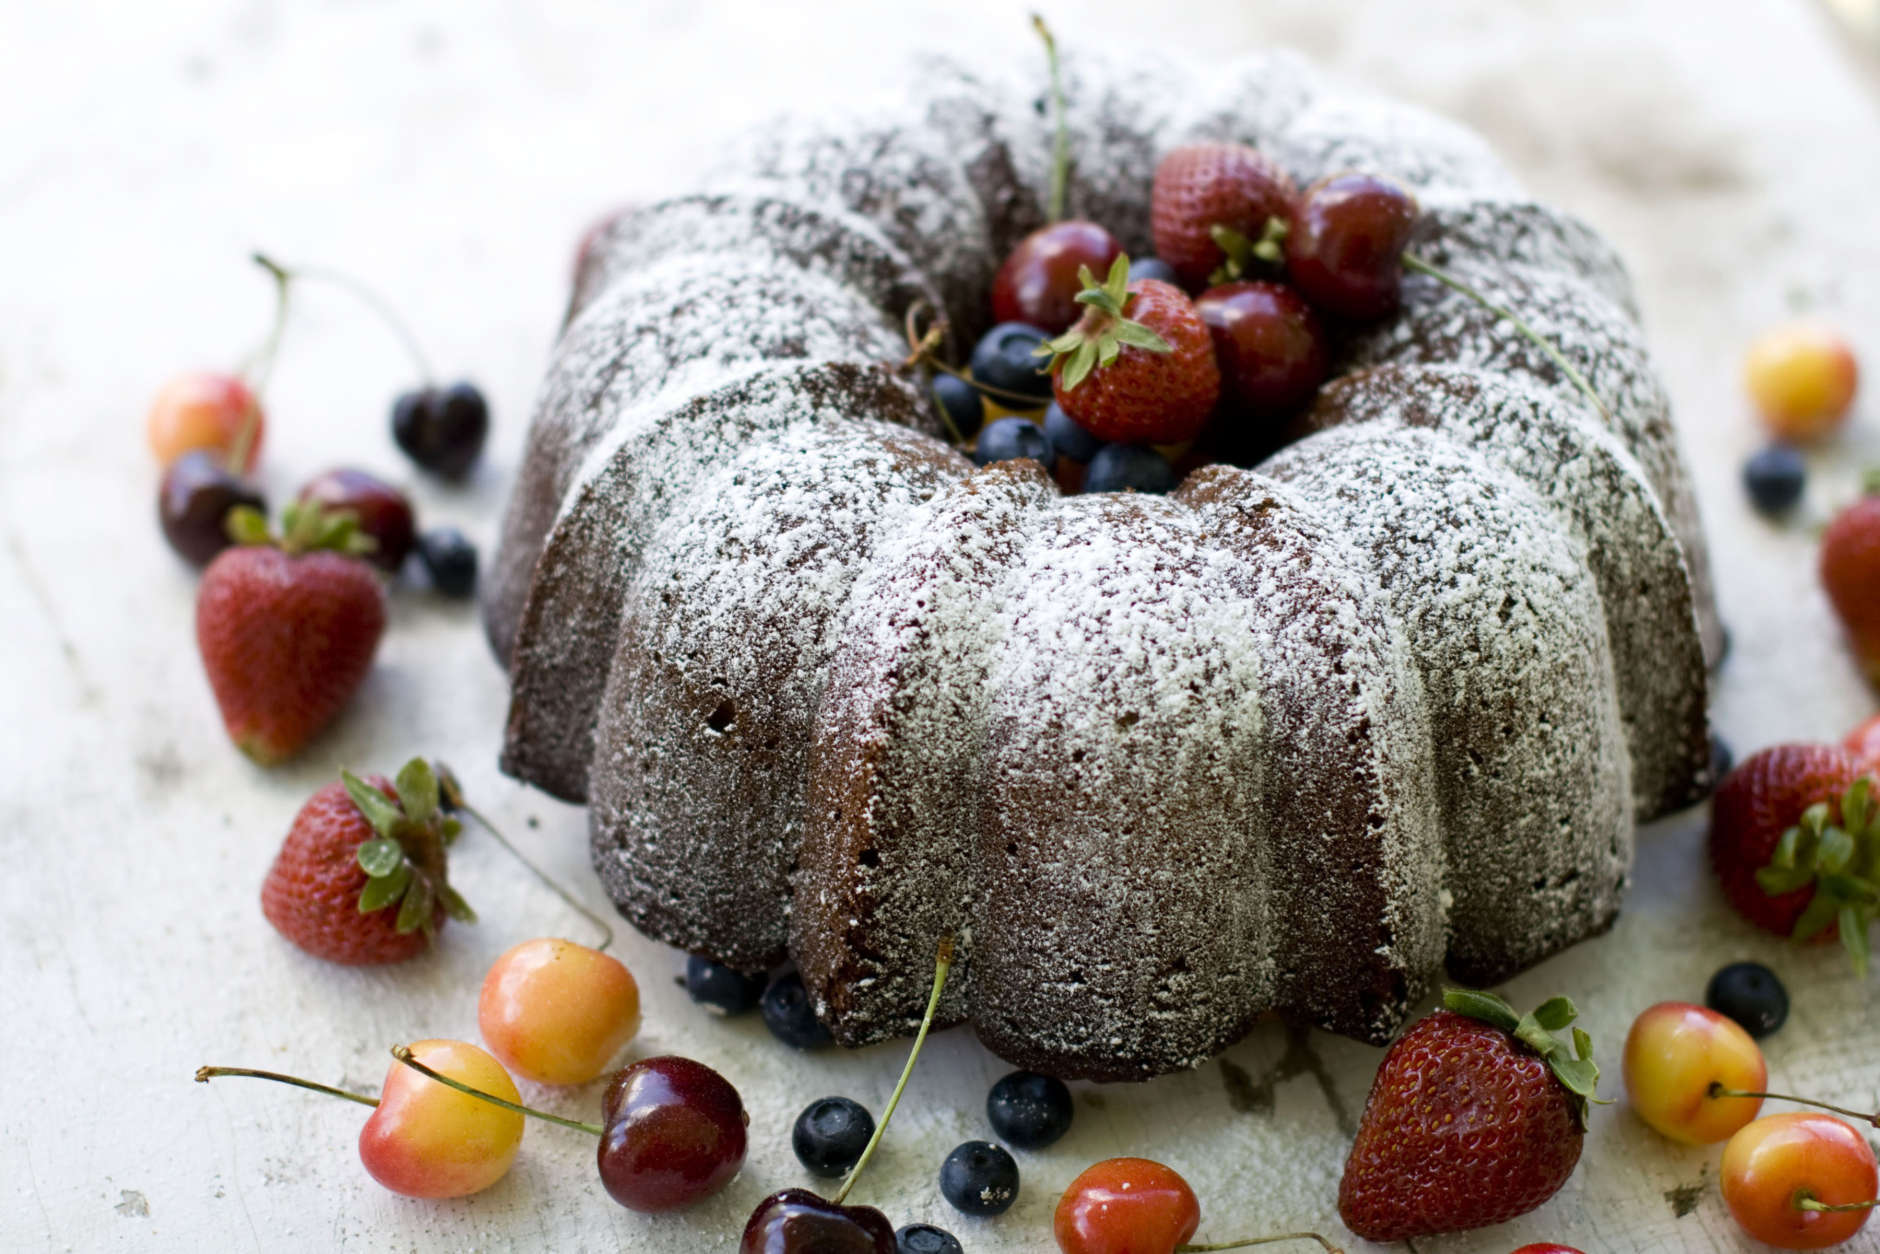 In this image taken on July 9, 2012, an economy pound cake served with blueberries, cherries, and strawberries is shown in Concord, N.H. (AP Photo/Matthew Mead)